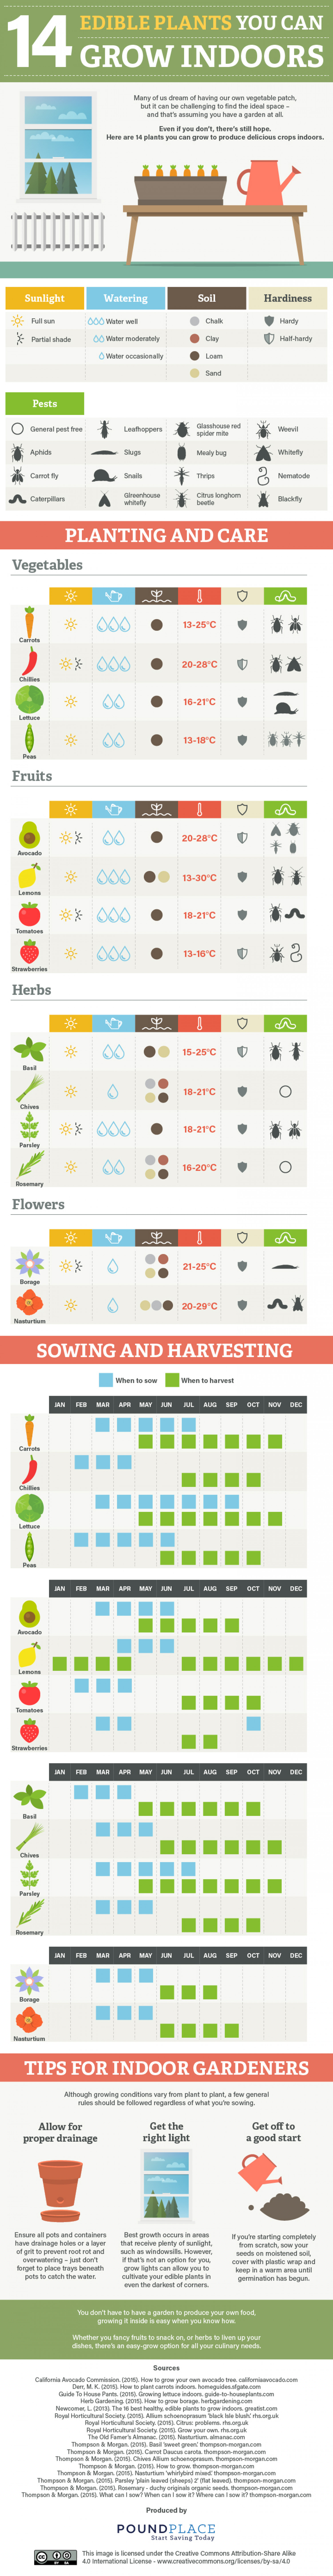 14 Edible Plants You Can Grow Indoors Infographic